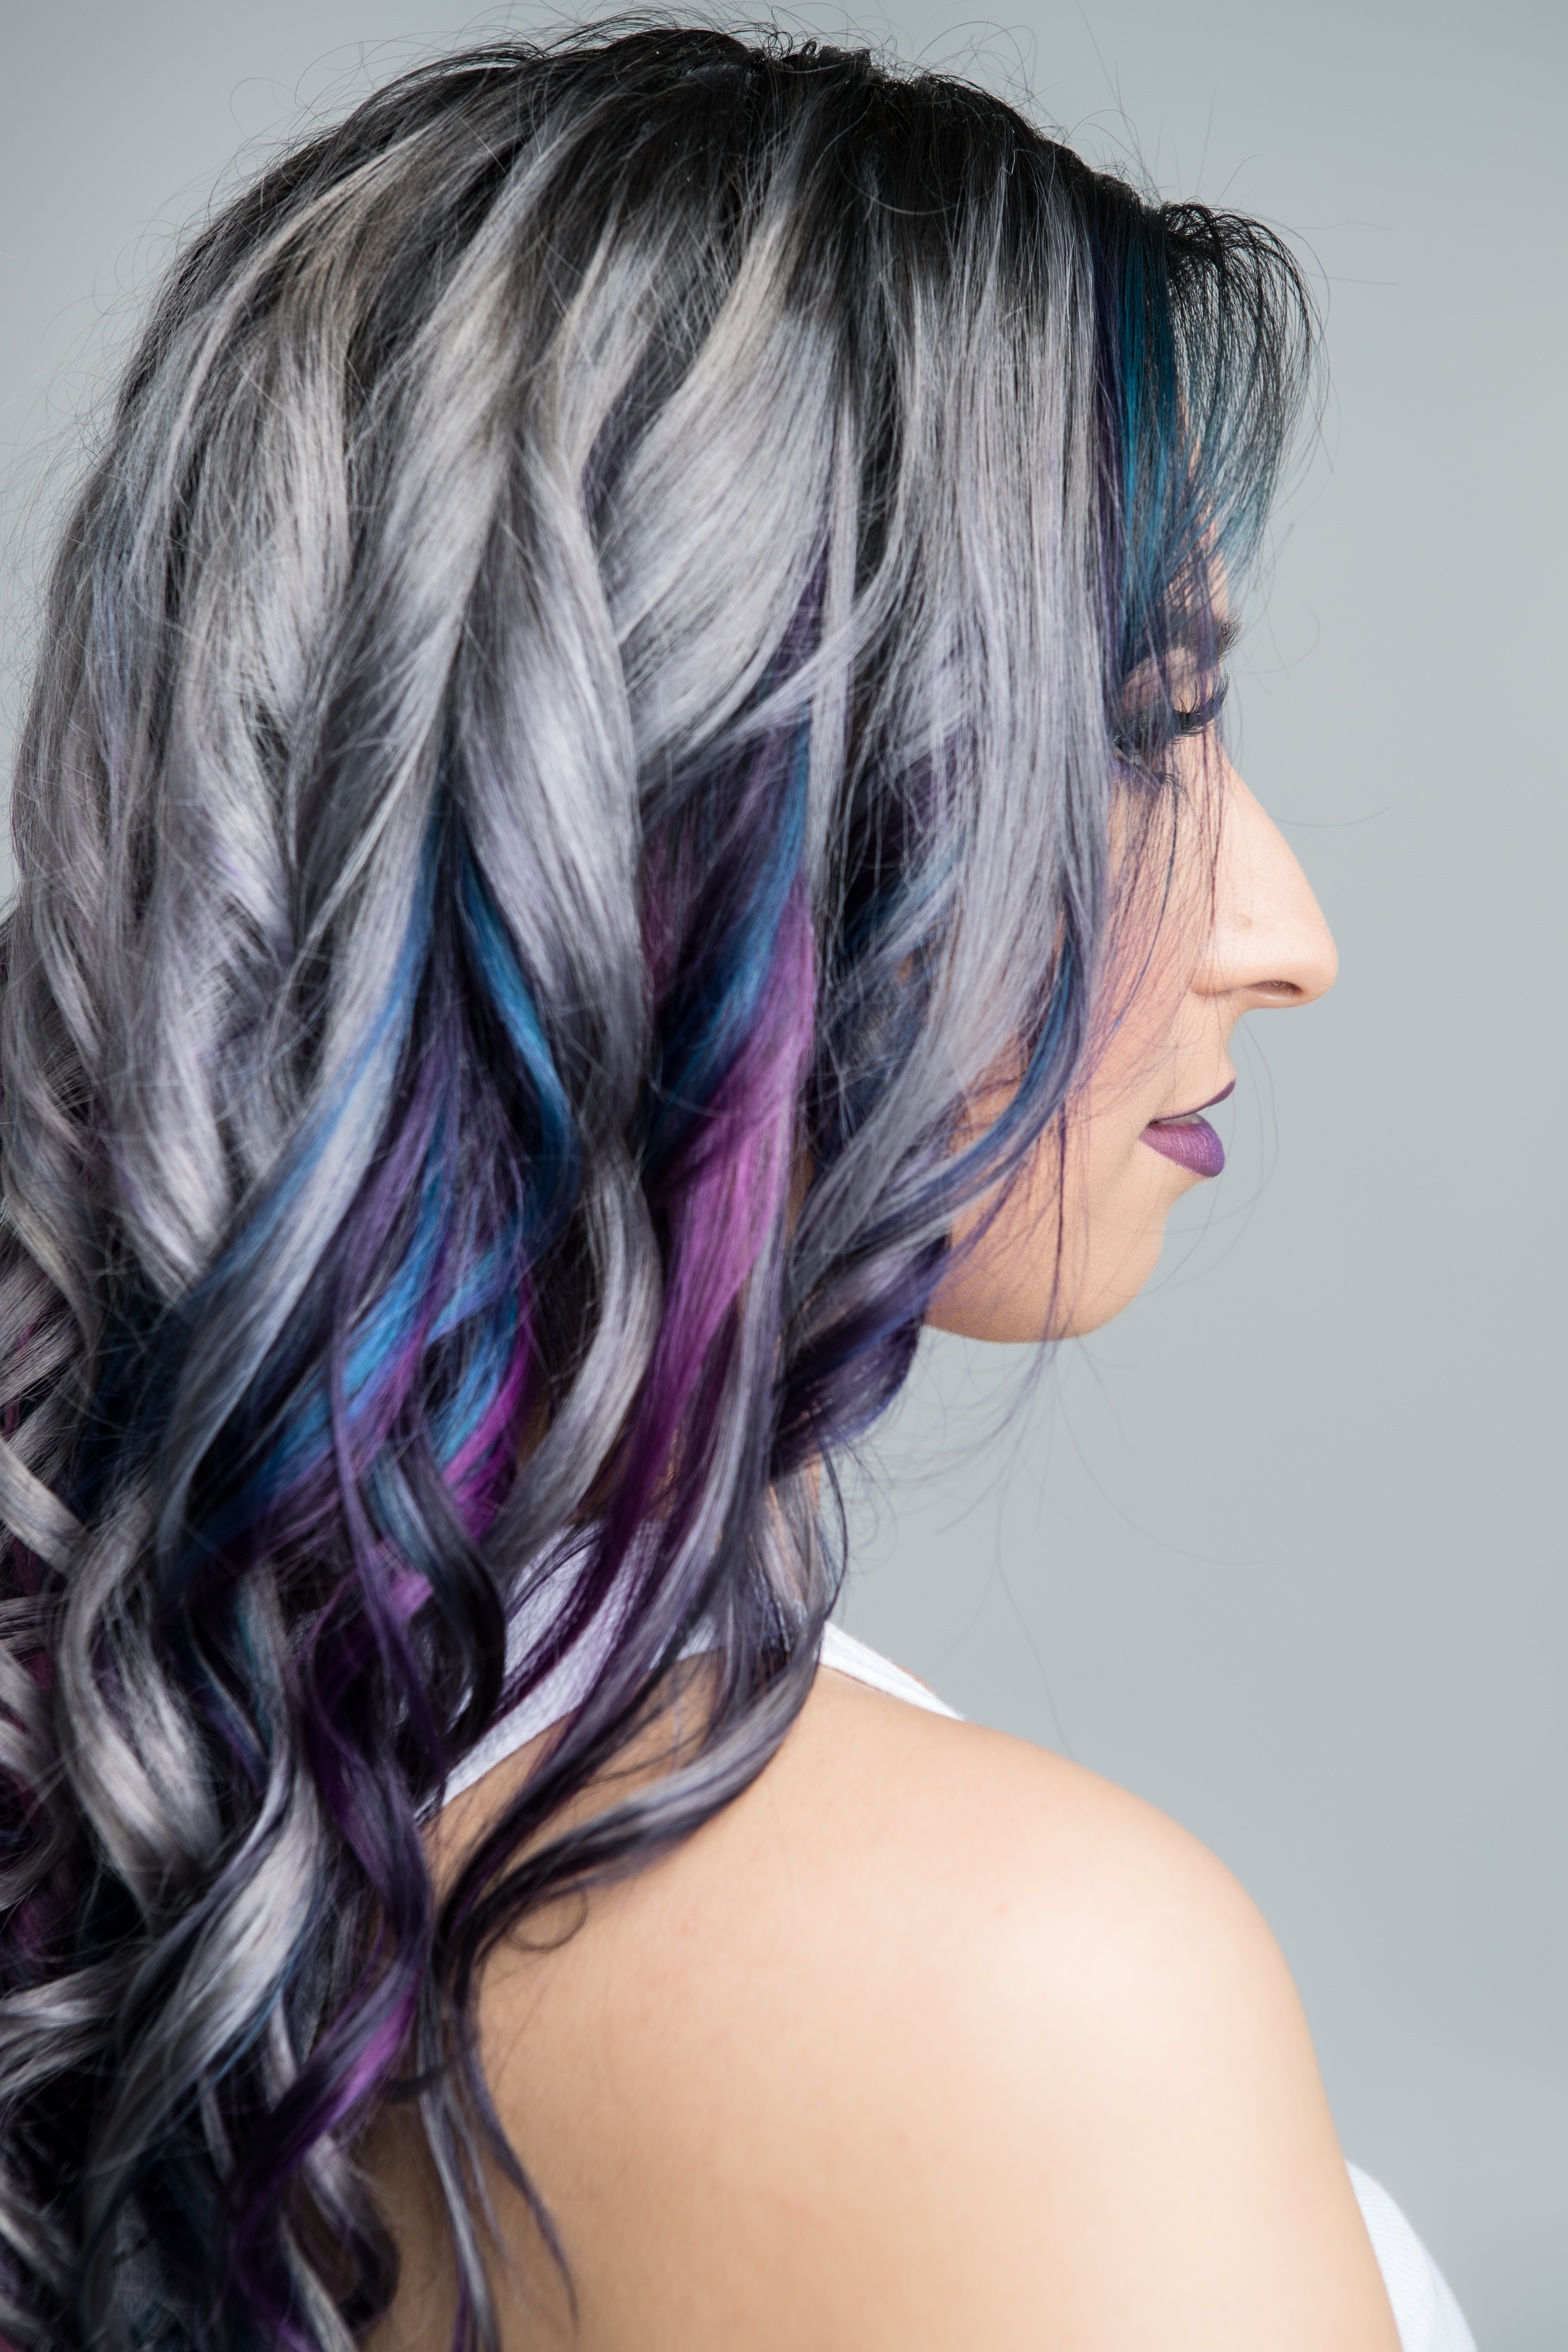 Side view of a long hair style. Hair is mostly silver with blue and purple streaks mixed at the ends.